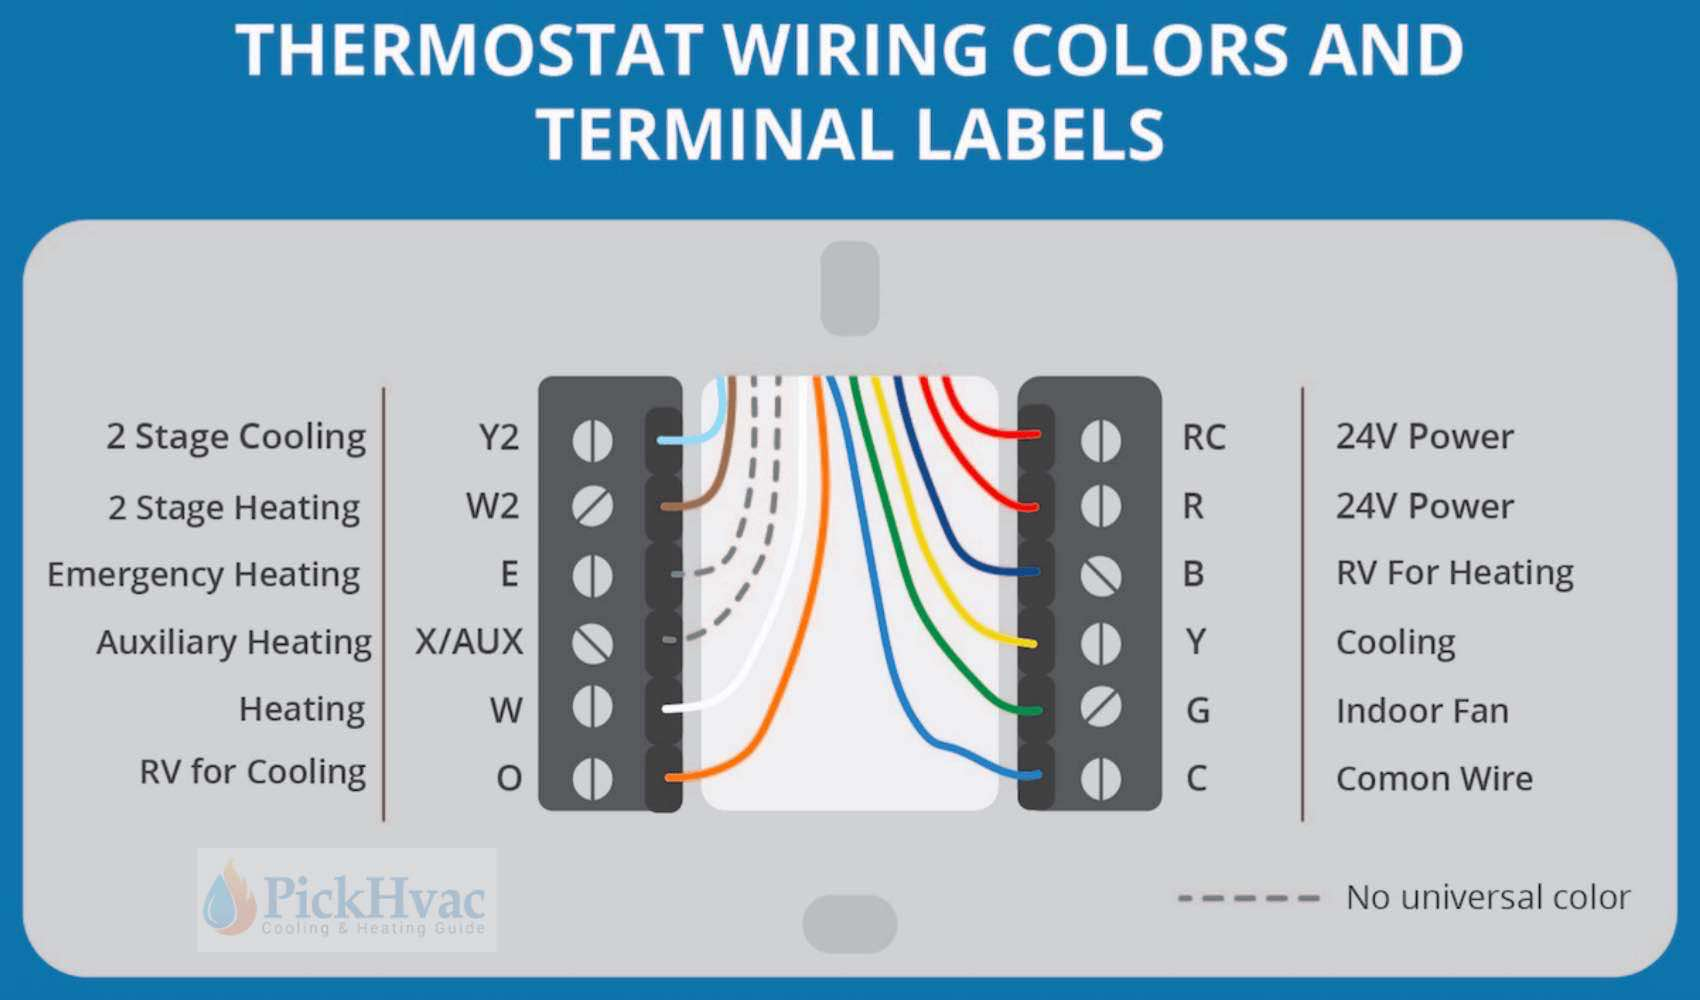 Thermostat Wiring Guide For Homeowners 2020 | Wiring Diagram For Thermostat